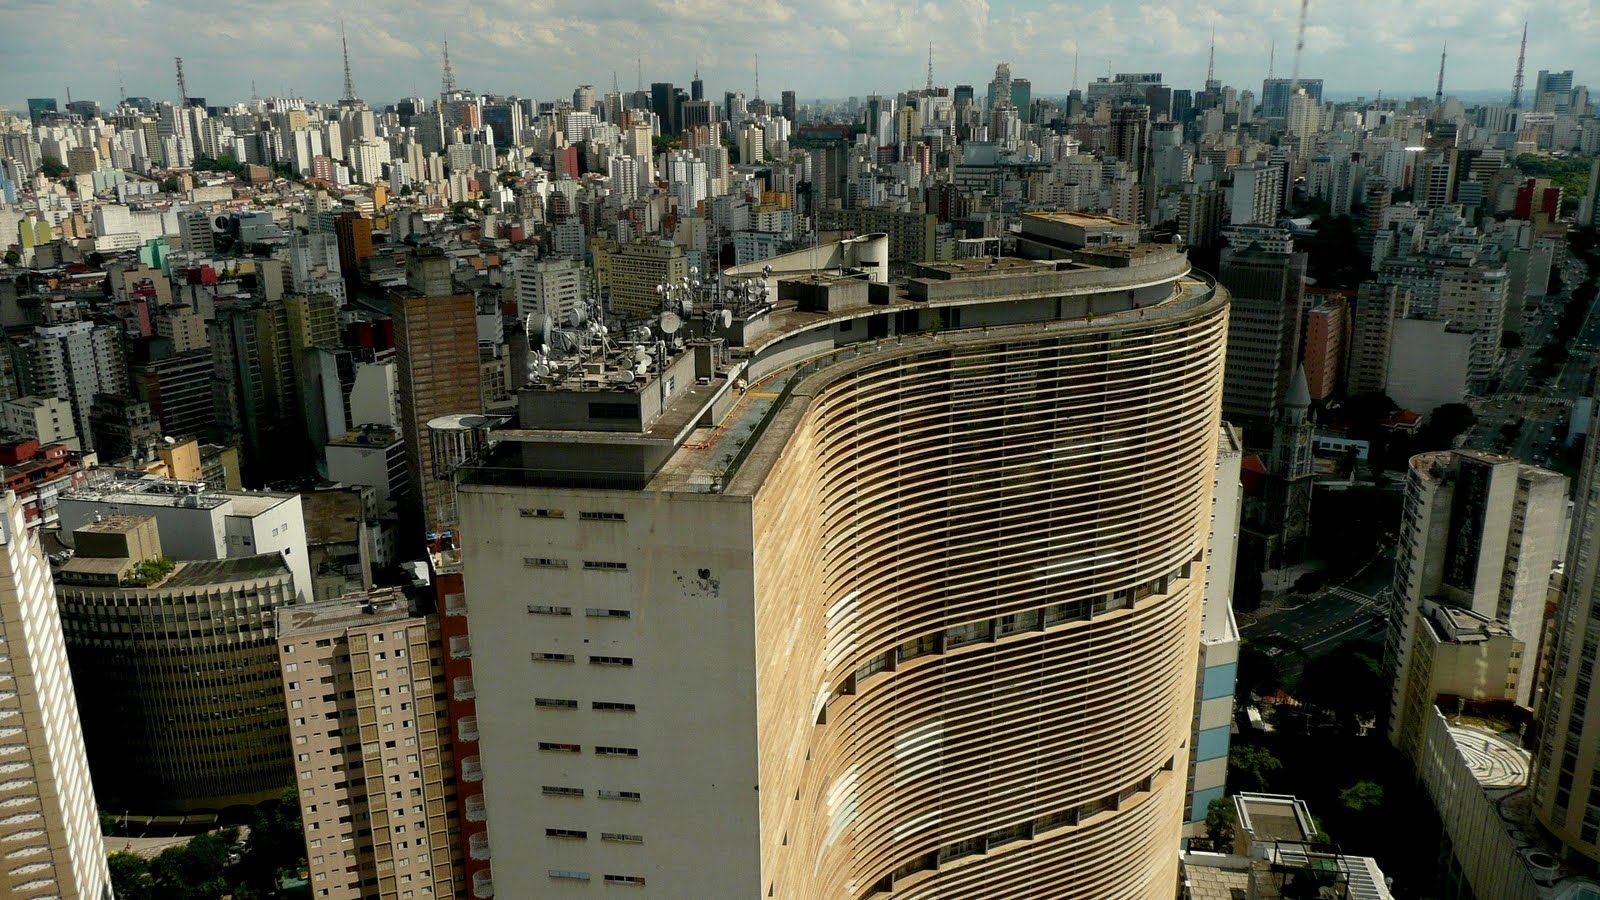 Combining interviews with Sao Paulo-based creatives – including architect Letícia Nobell, designers Fernando and Humberto Campana and architect firm Triptyque – Paulistano film-maker Marcelo Galvão explores how, despite its traffic chaos, urban decay and drizzle, Sampa continues to enthrall and inspire its inhabitants [...]